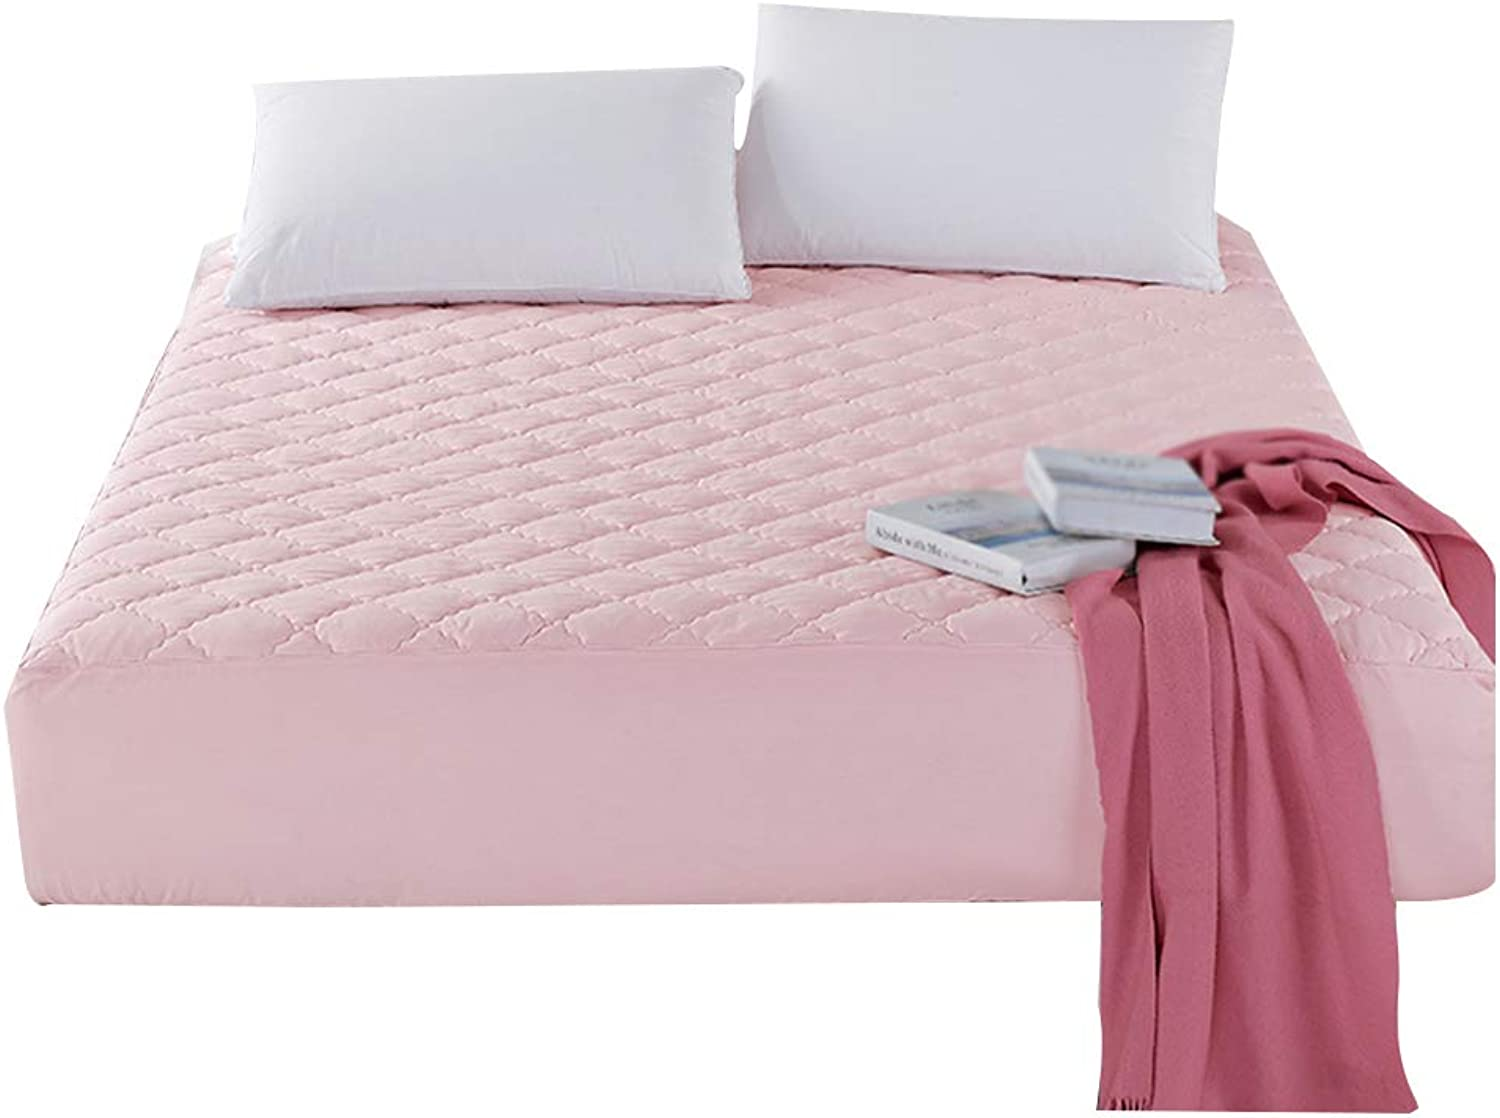 ZHAOHUI Mattress Predector Cotton Breathable Fiber Quilted Non-Slip Hypoallergenic Soft Skin-Friendly, 4 colors, 9 Sizes (color   Pink, Size   120 x 190 cm)